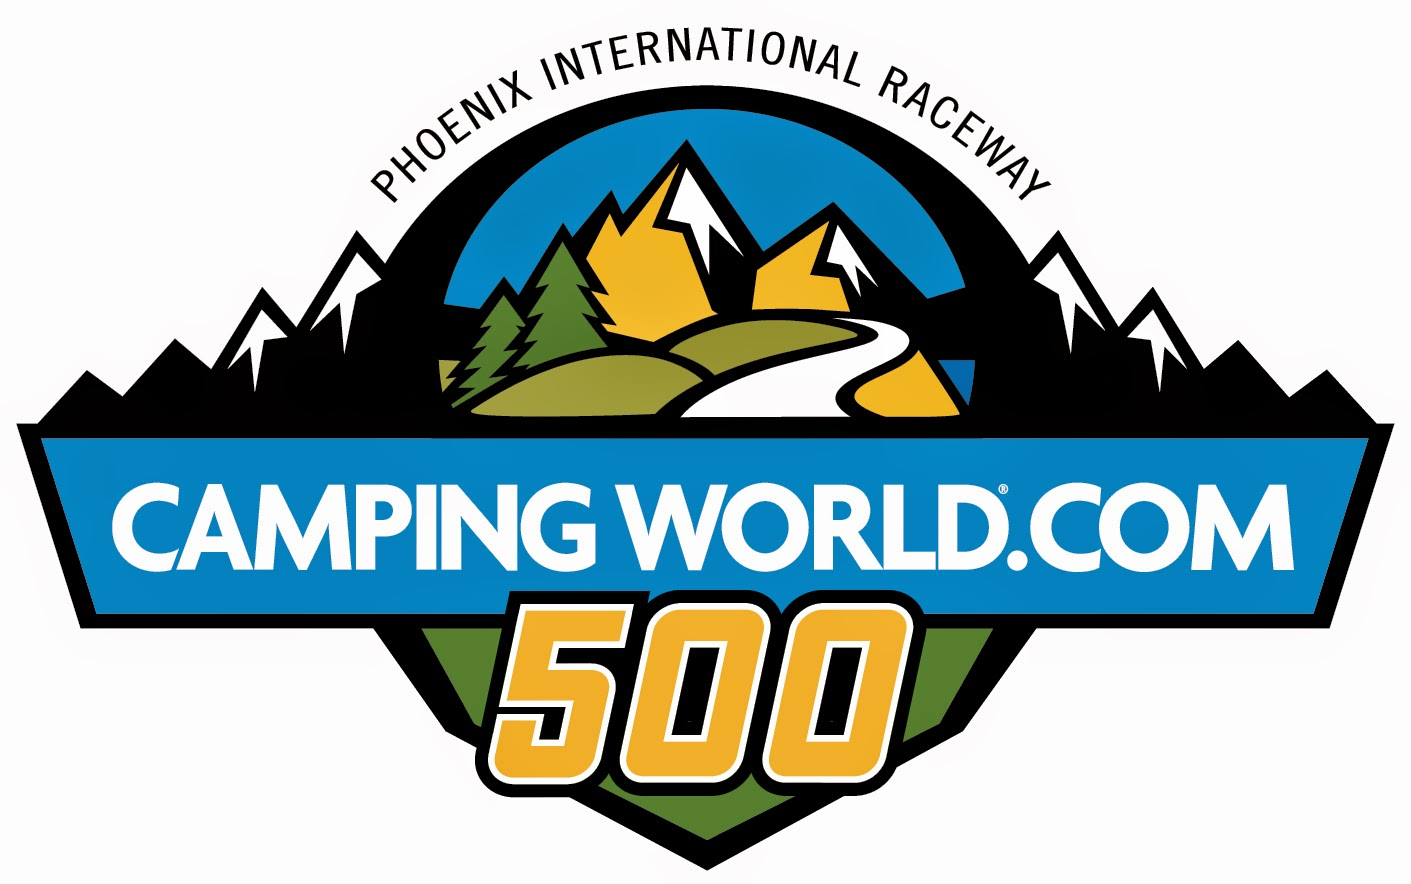 Race No. 4: CampingWorld.com 500 at Phoenix